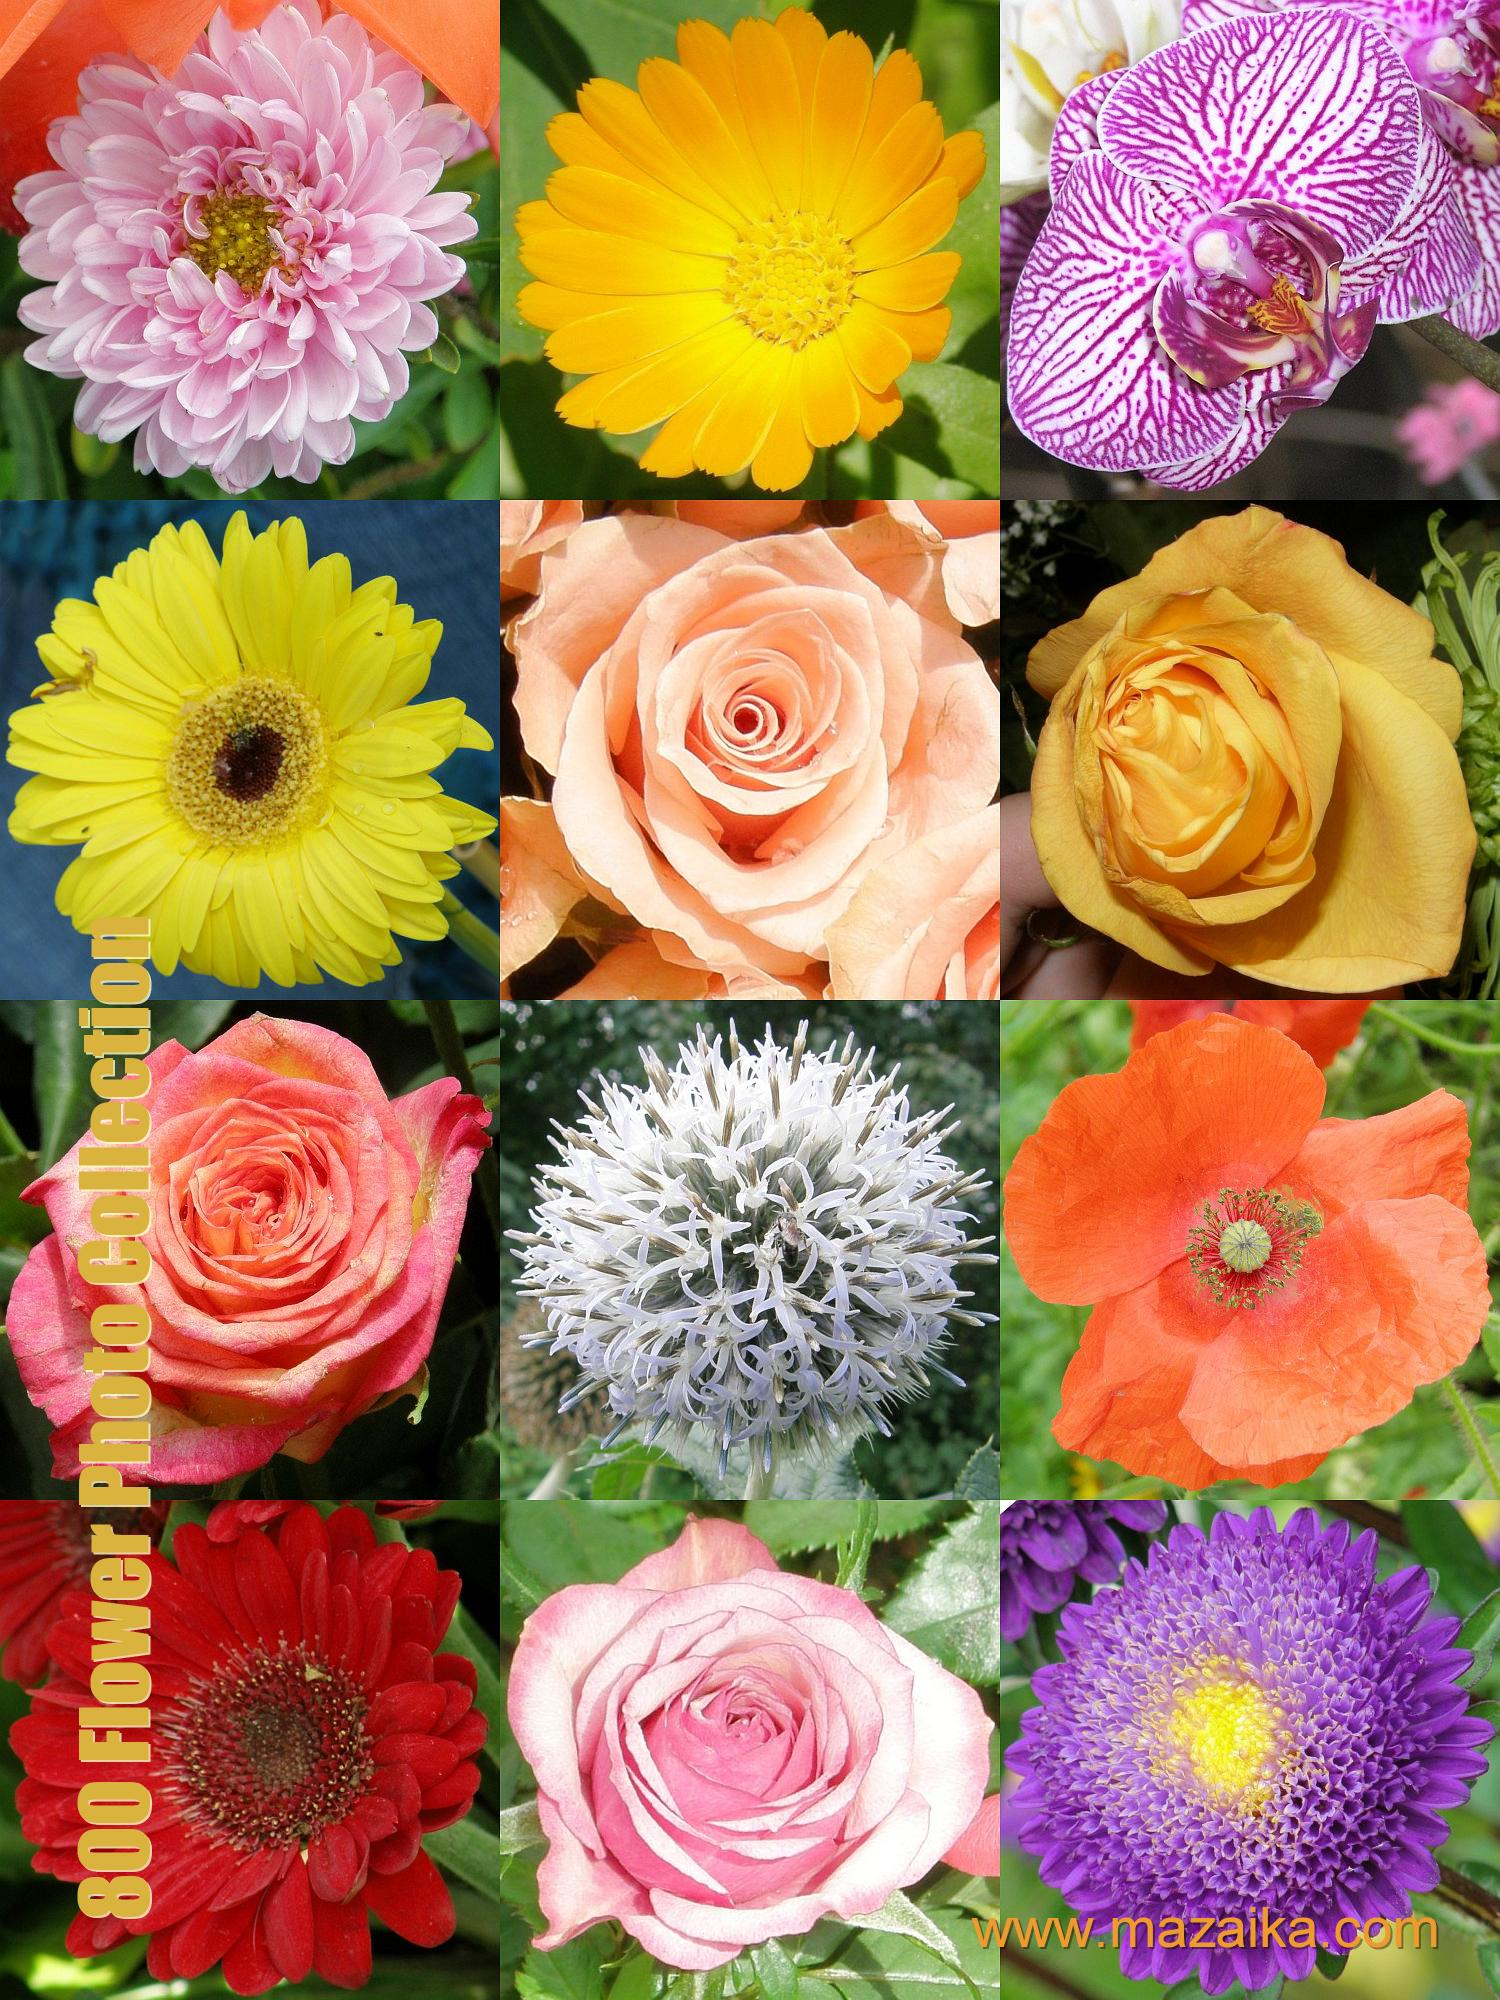 Free jpeg images of flowers clip art library Free jpeg images of flowers - ClipartFest clip art library